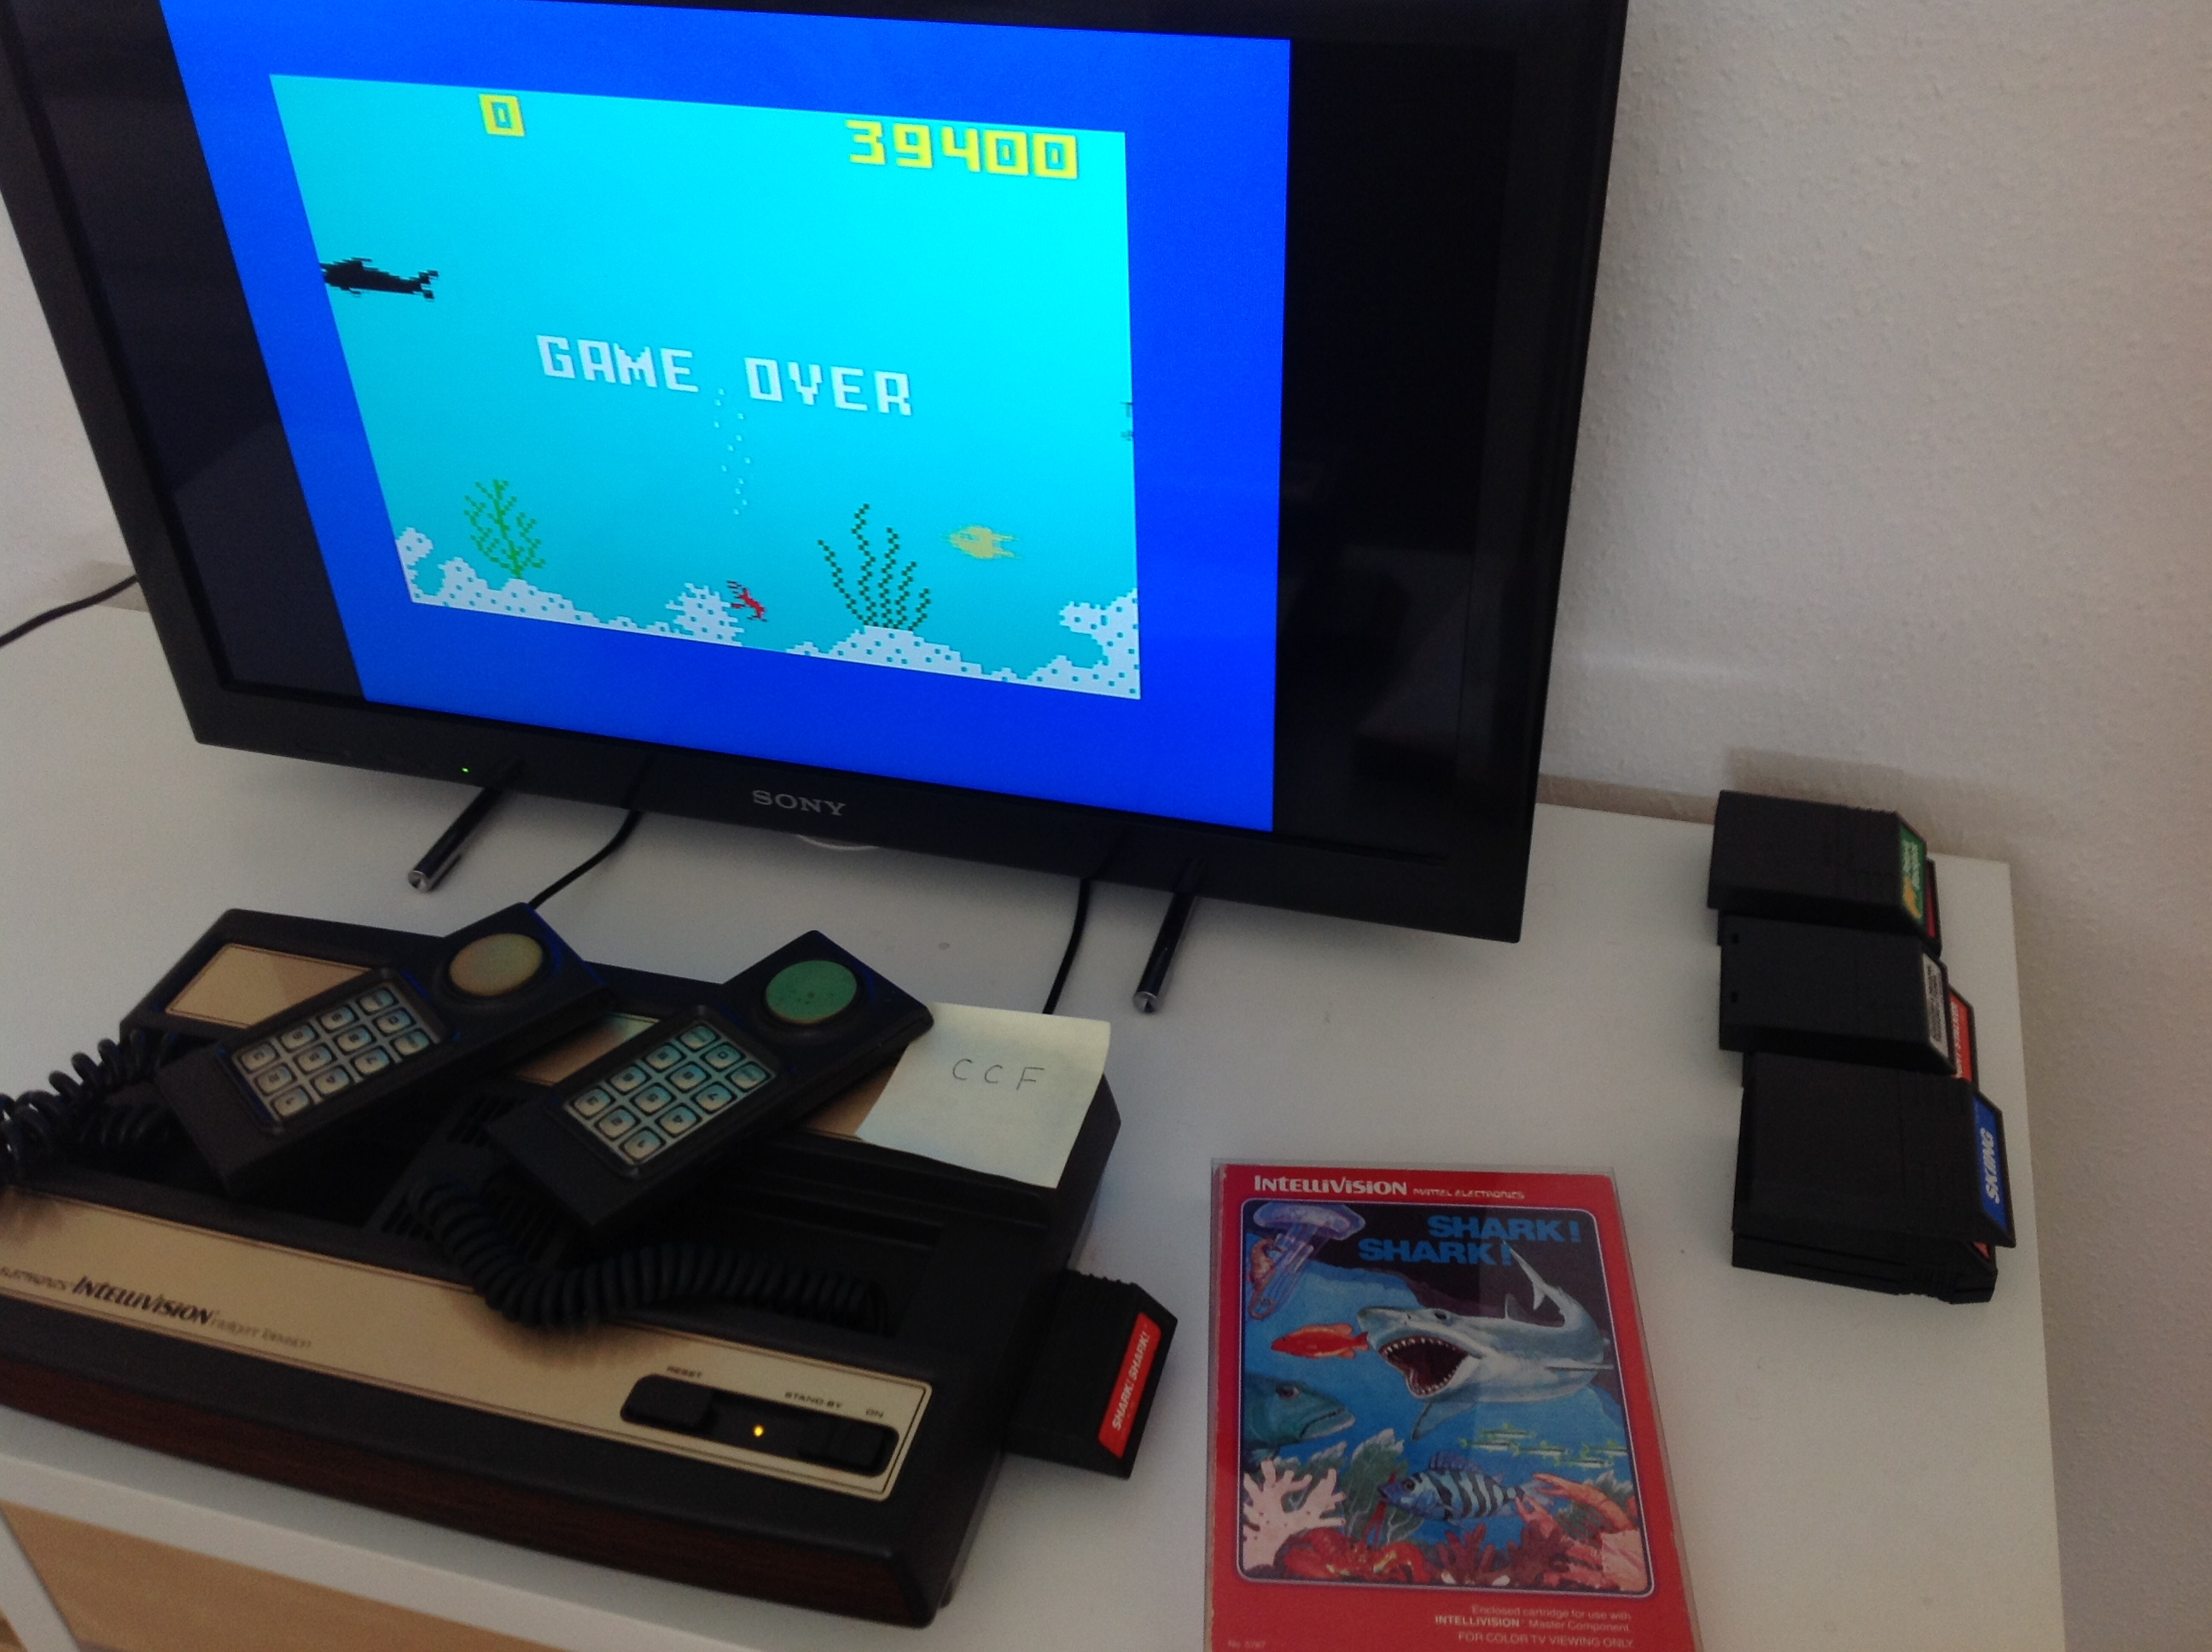 CoCoForest: Shark! Shark!: Normal Mode (Intellivision) 39,400 points on 2018-08-23 06:48:20